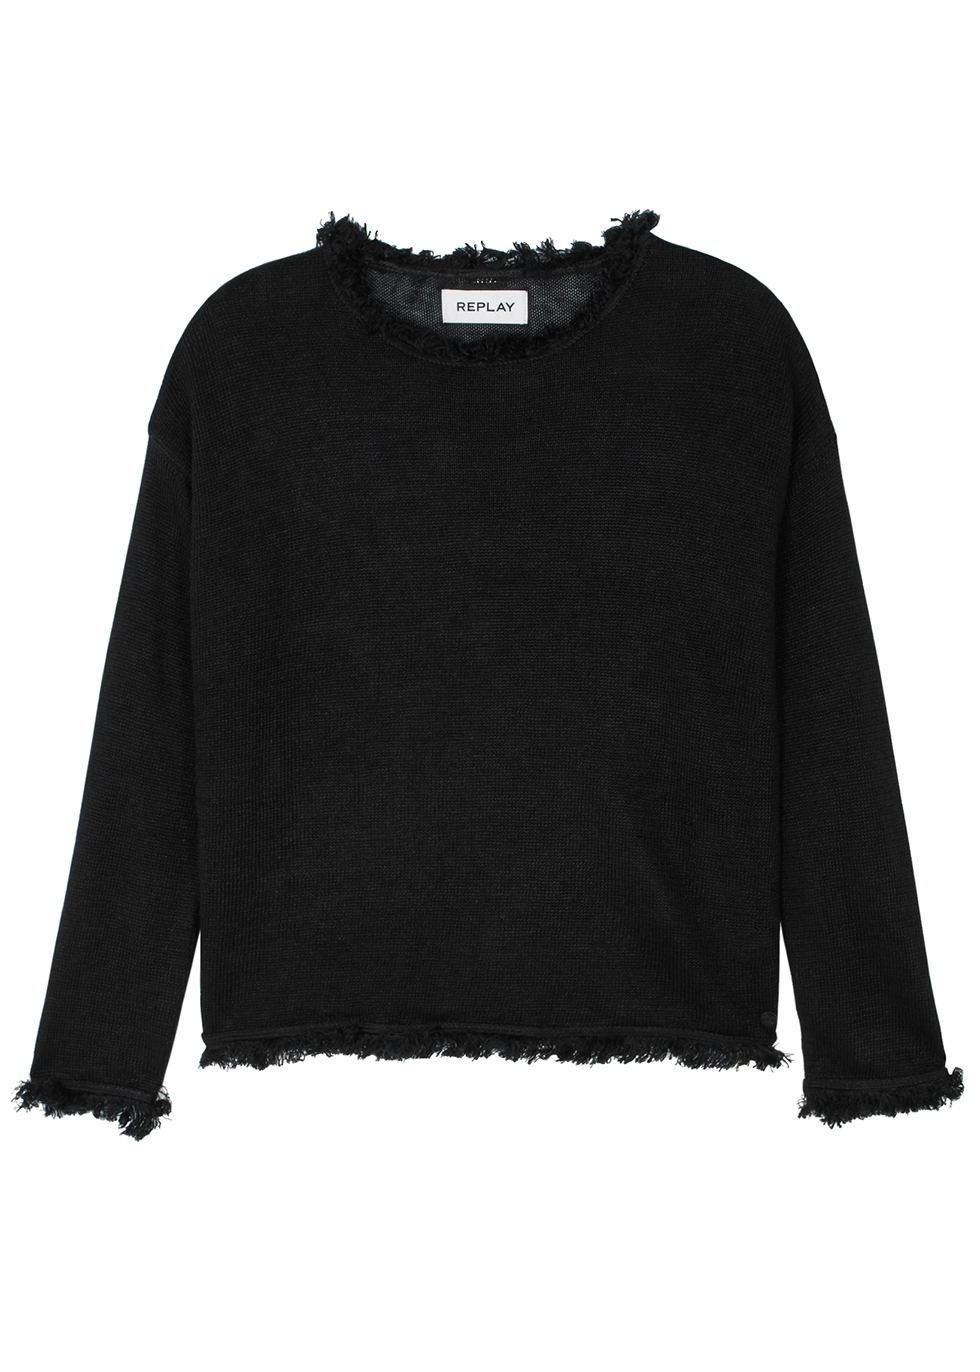 amp; Designer Nichols Harvey Oversized Knitted Women's Jumpers zafwqR7w4